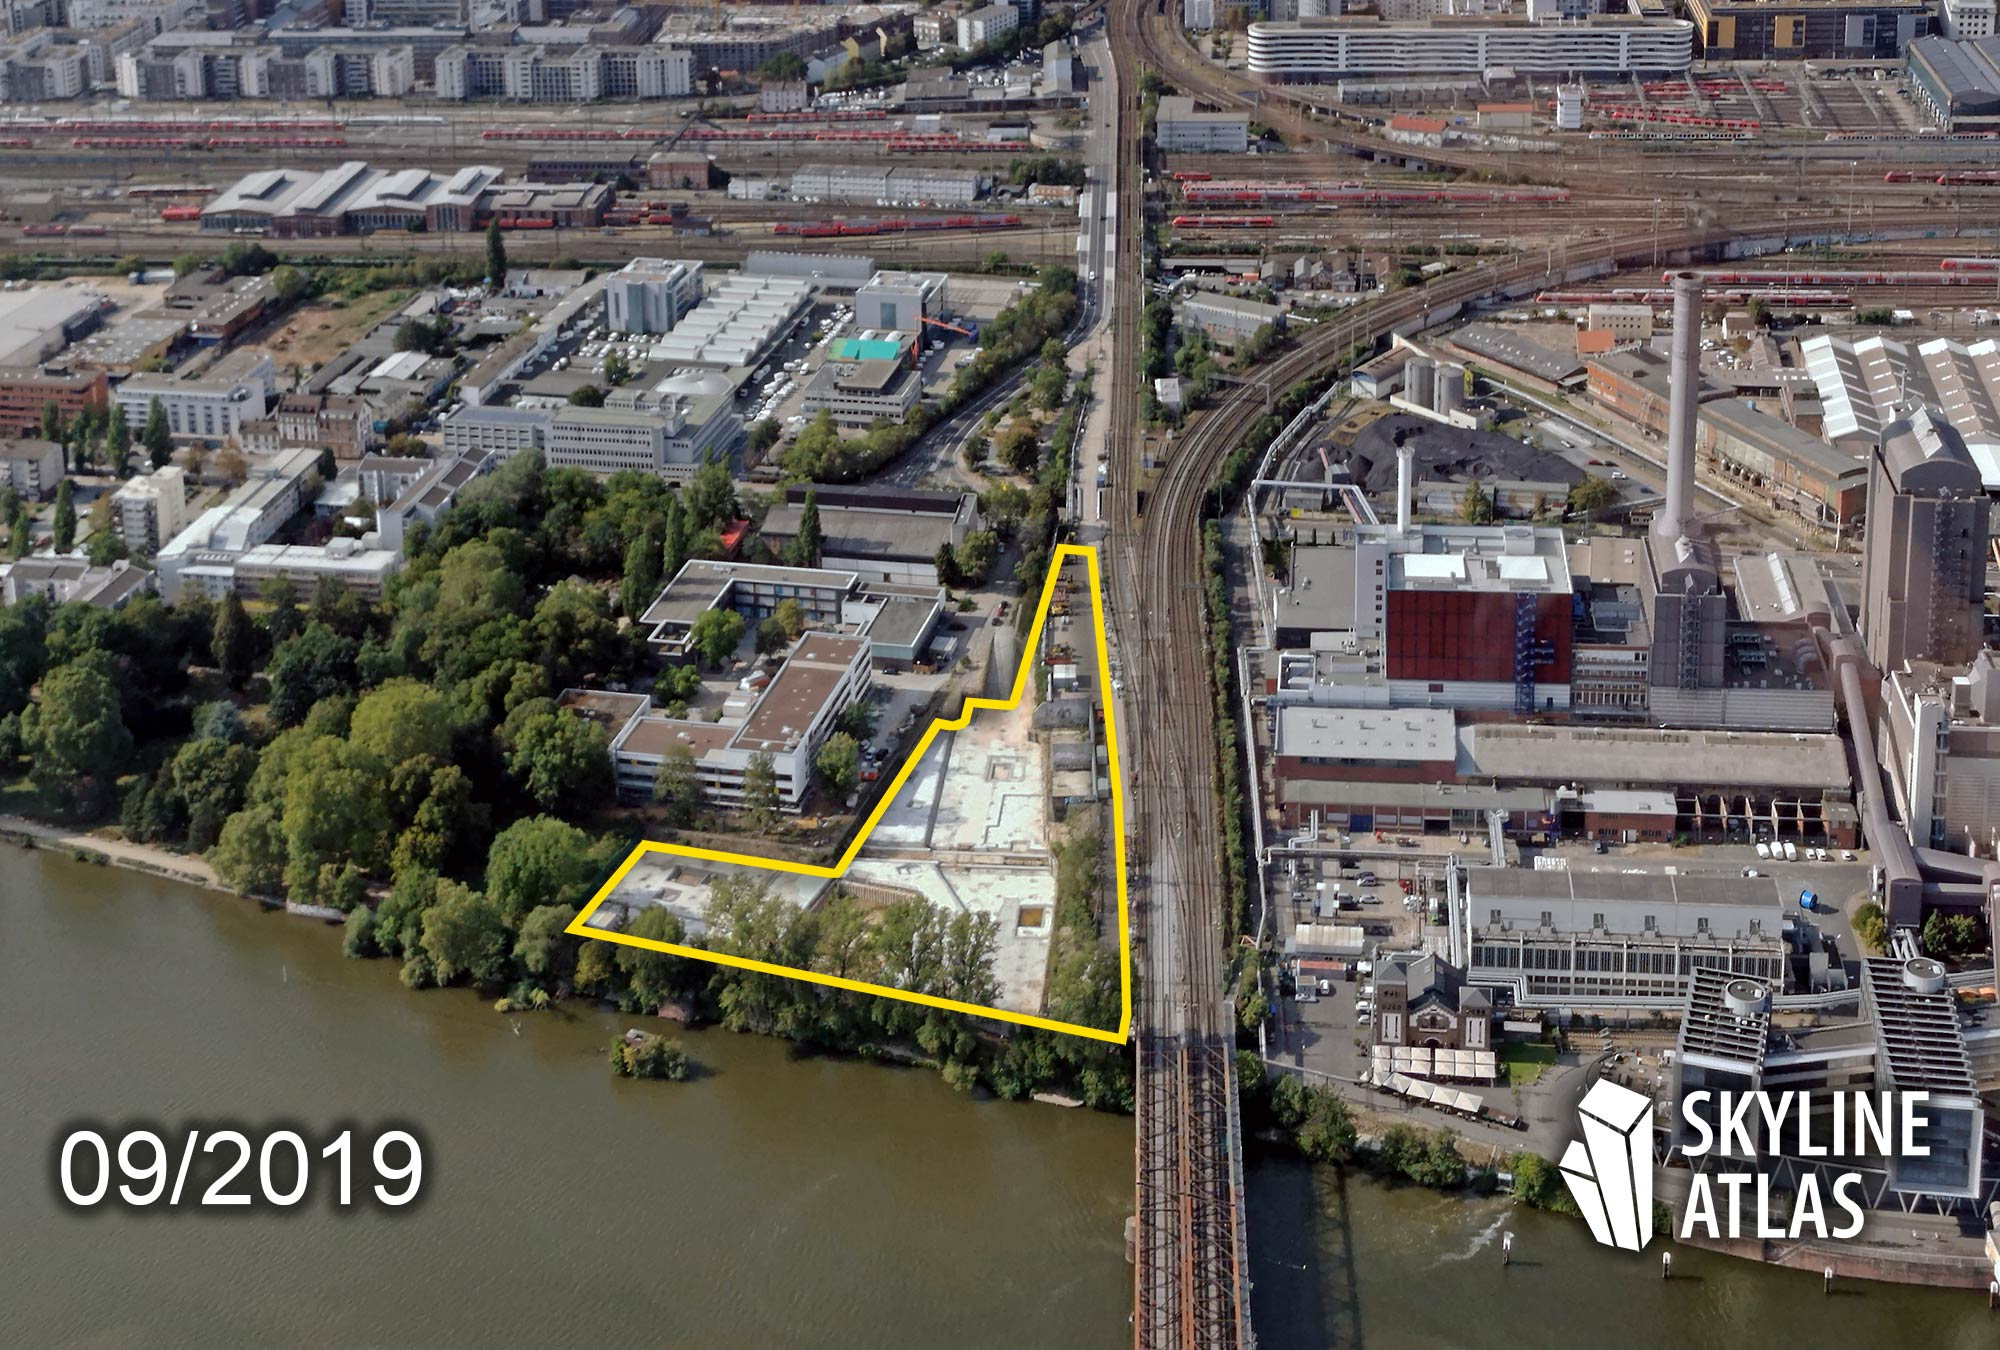 Wohnquartier at Westhafen - Living Quarter at Harbor West Frankfurt - Highrise at Sommerhoffpark - Rental apartments and student dormitory - New building at the Main river shore - construction site in September 2019